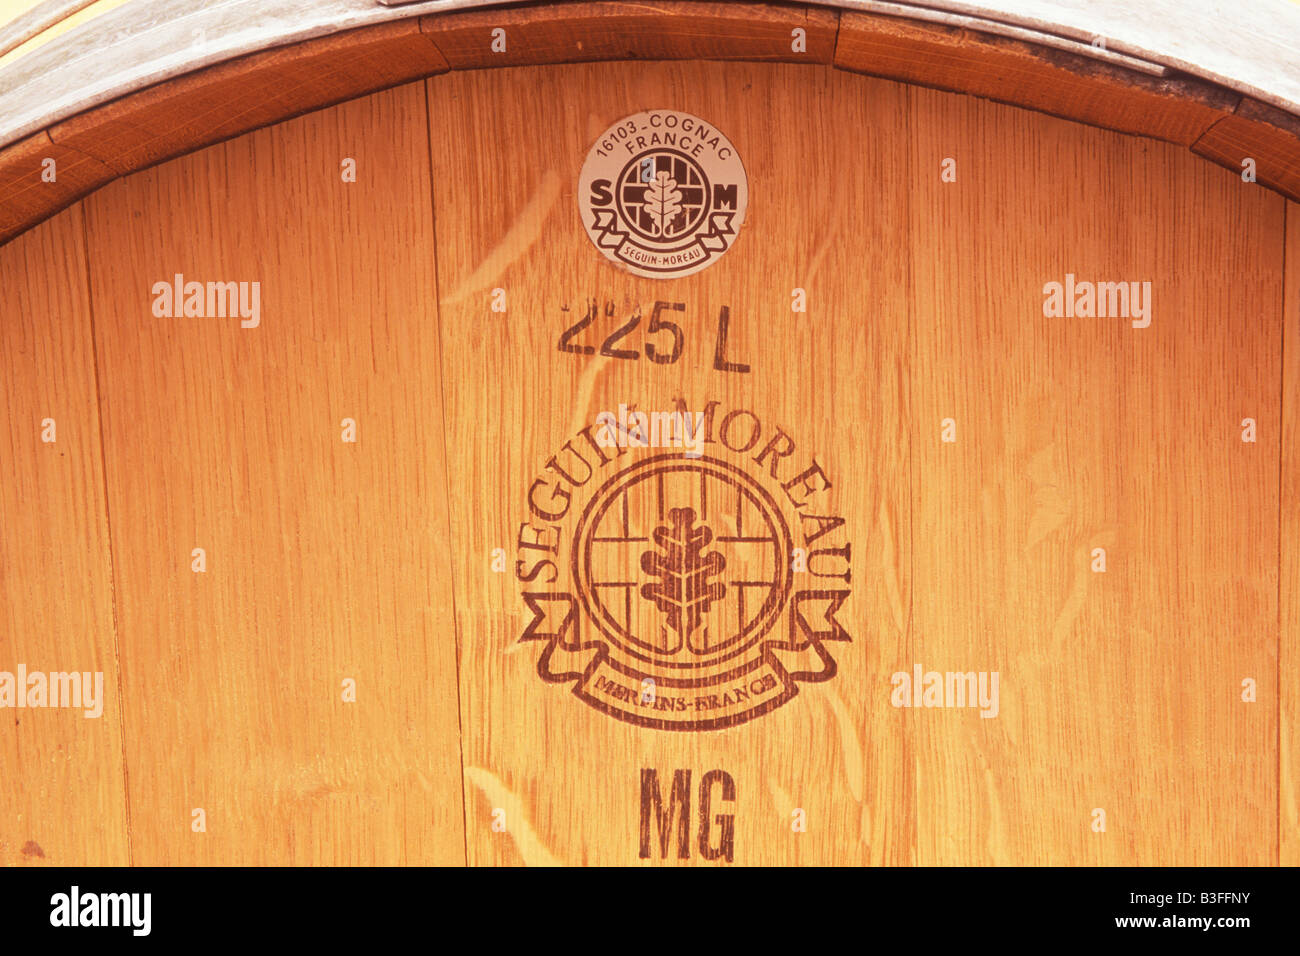 French oak wine barrels S Anderson Winery Napa Valley California - Stock Image